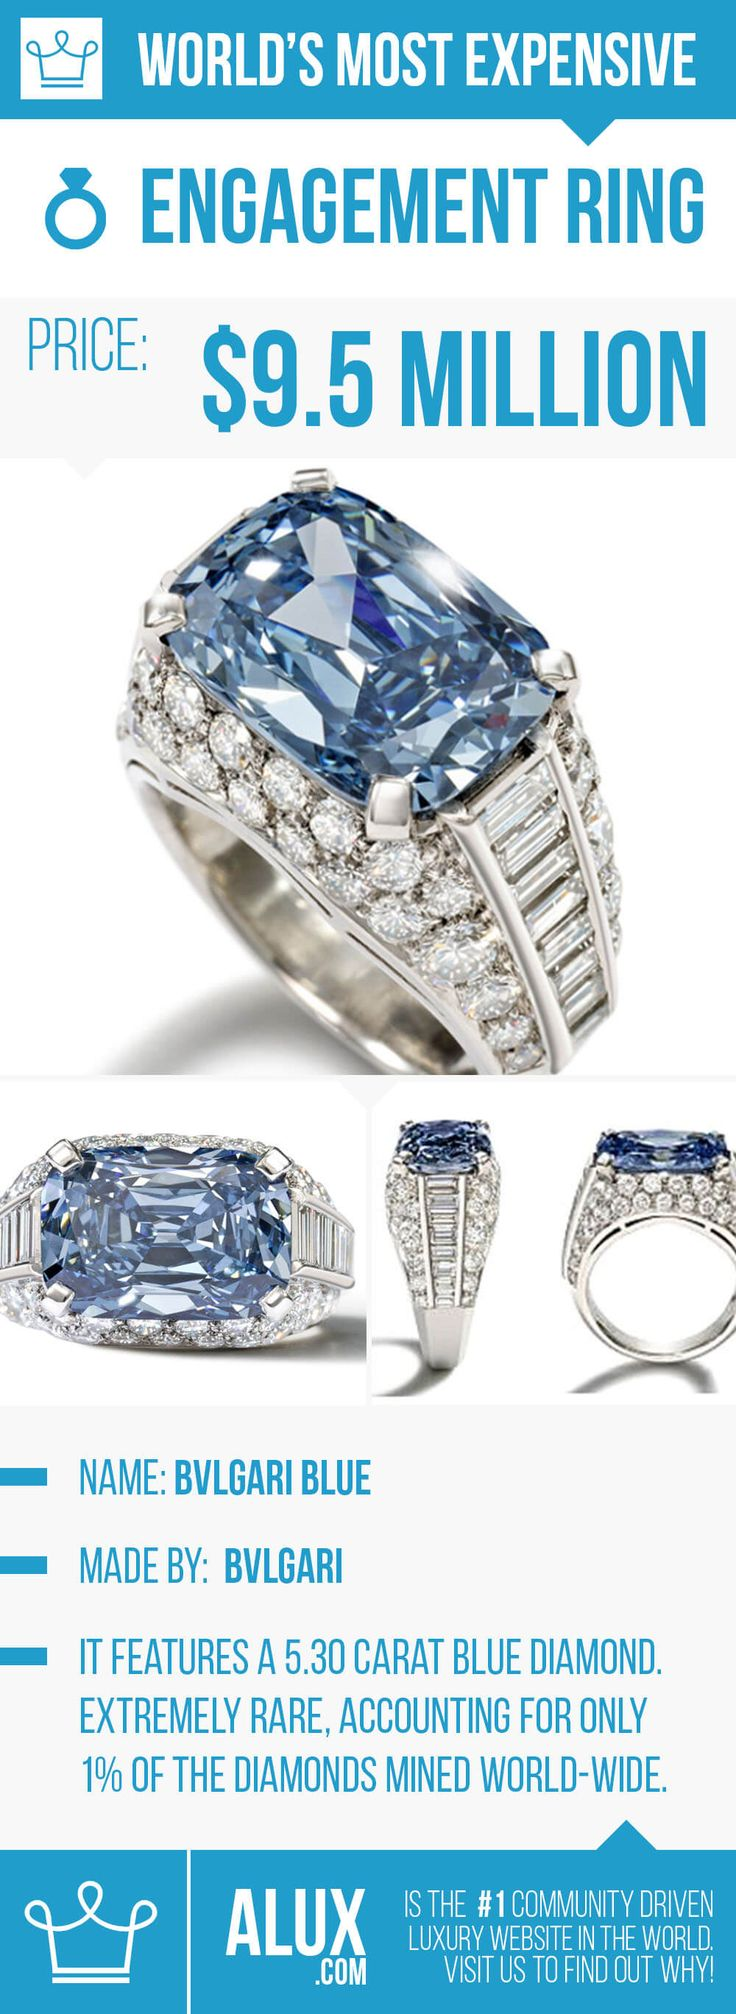 25 cute most expensive engagement ring ideas on pinterest most expensive ring expensive engagement rings and expensive rings